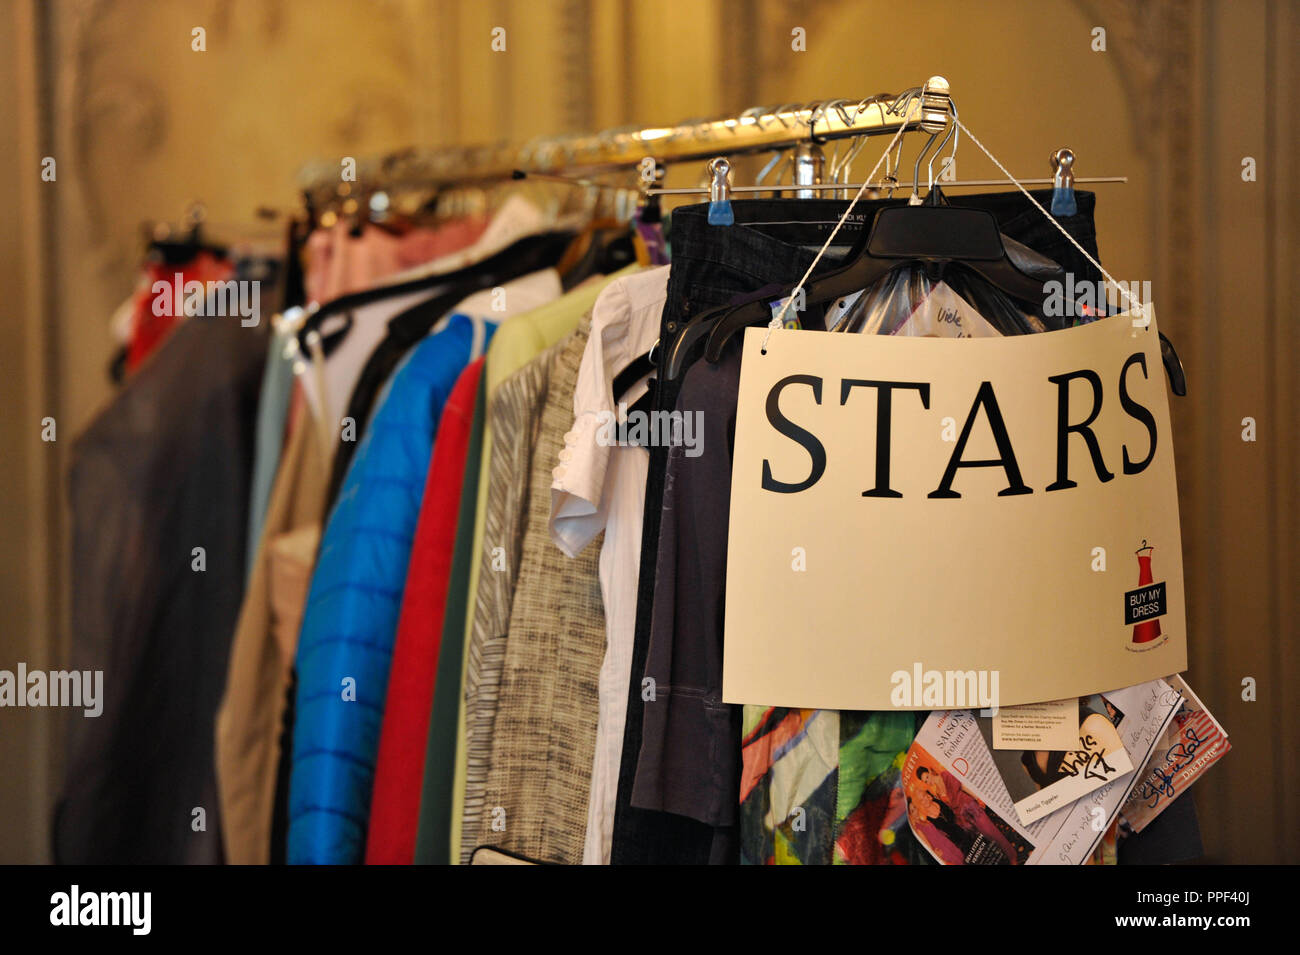 """The """"Buy My Dress"""" charity sale of dresses and accessories of celebrities at Hotel Bayerischer Hof in Munich in favor of the children's aid organization """"Children for a better World e.V."""". The picture shows a coat rack with the inscription """"Stars"""". Stock Photo"""